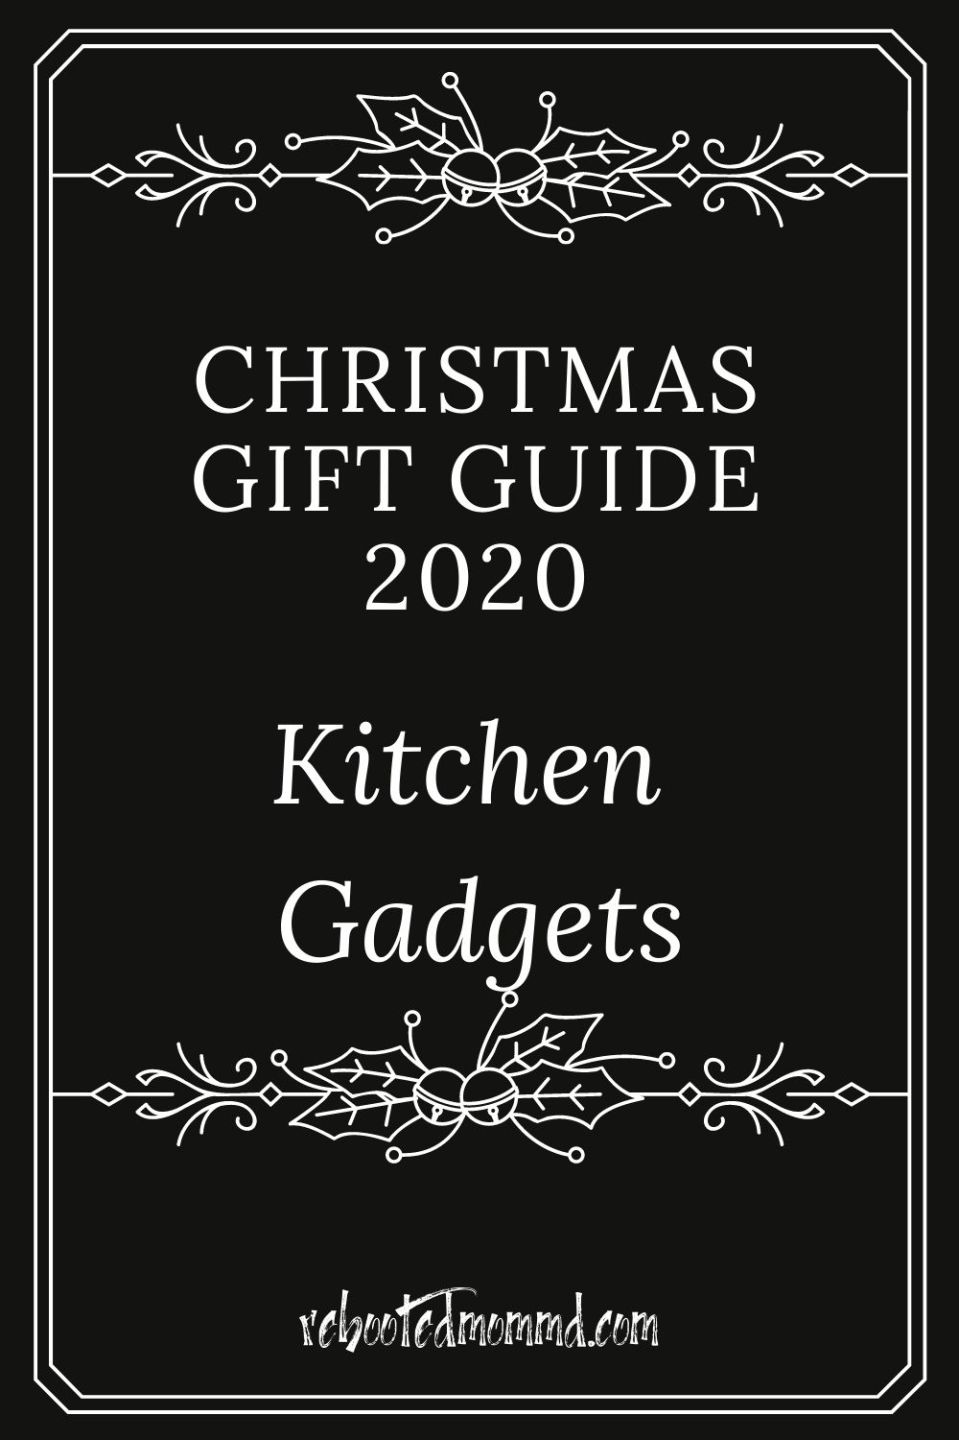 Christmas Gift Guide 2020: Kitchen Gadgets